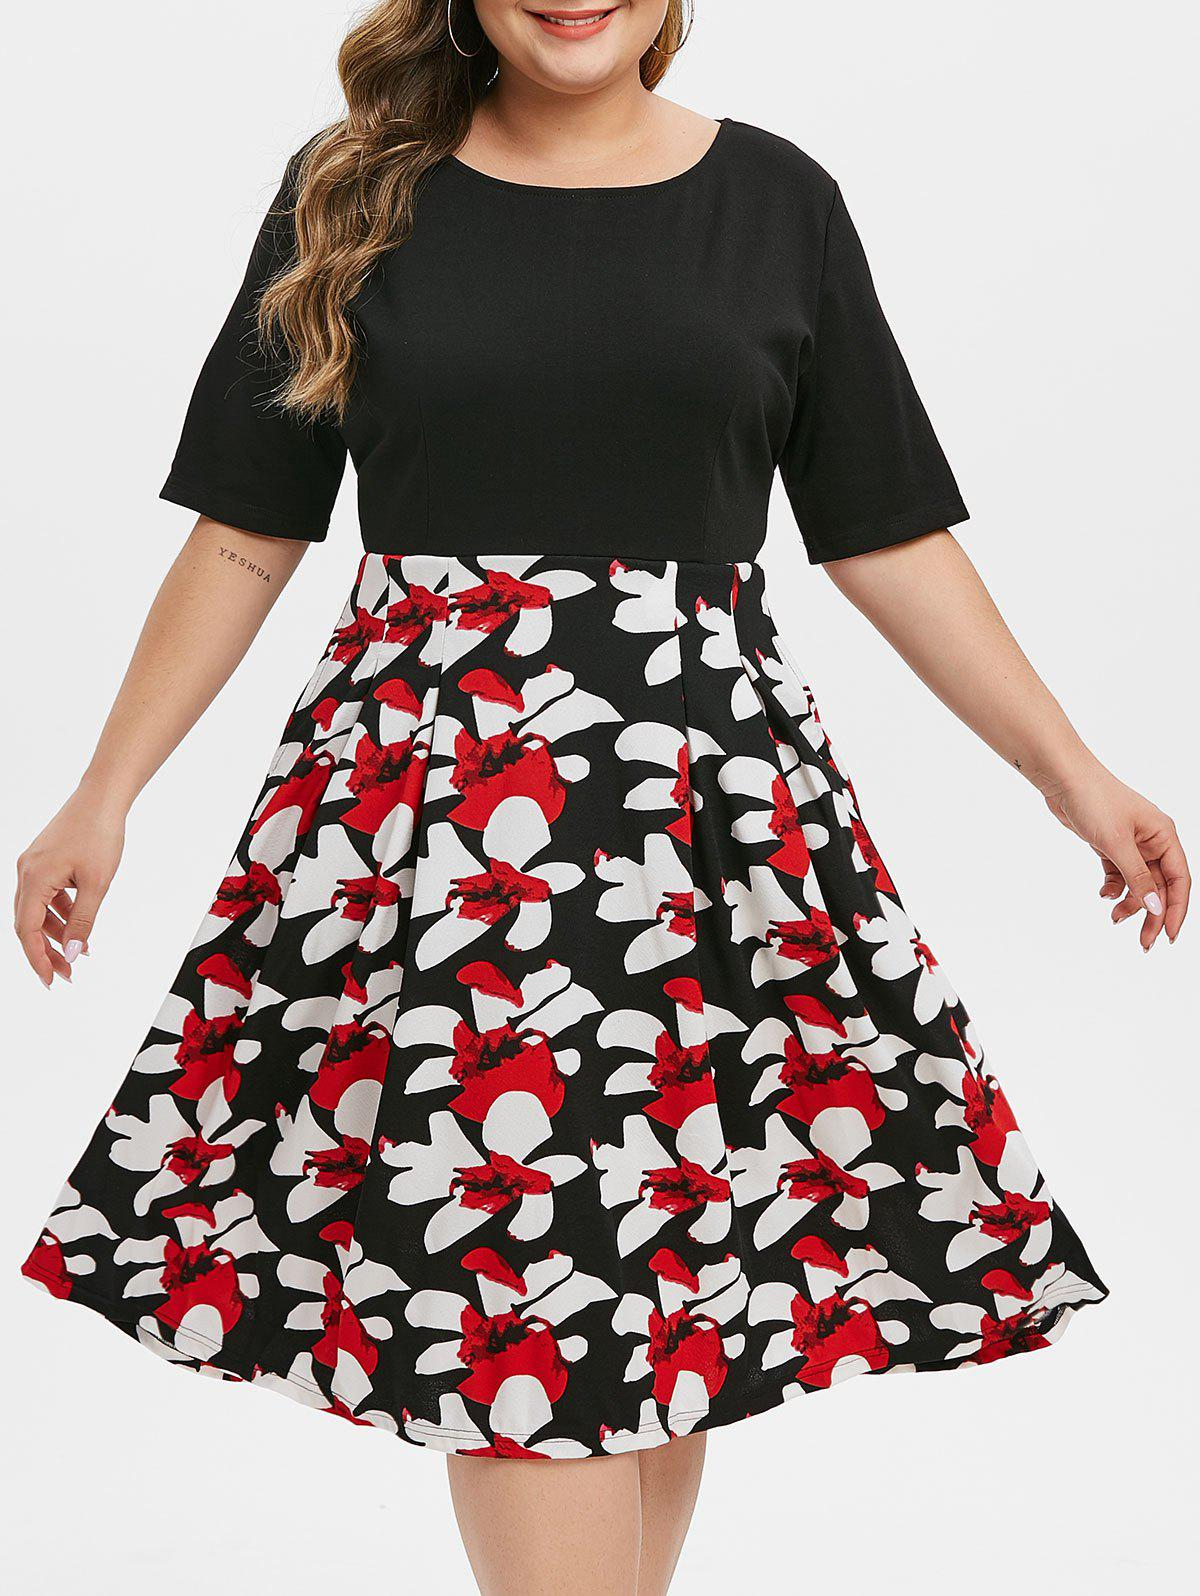 Contrast Floral Back Zipper Short Sleeve Plus Size Dress - RED M